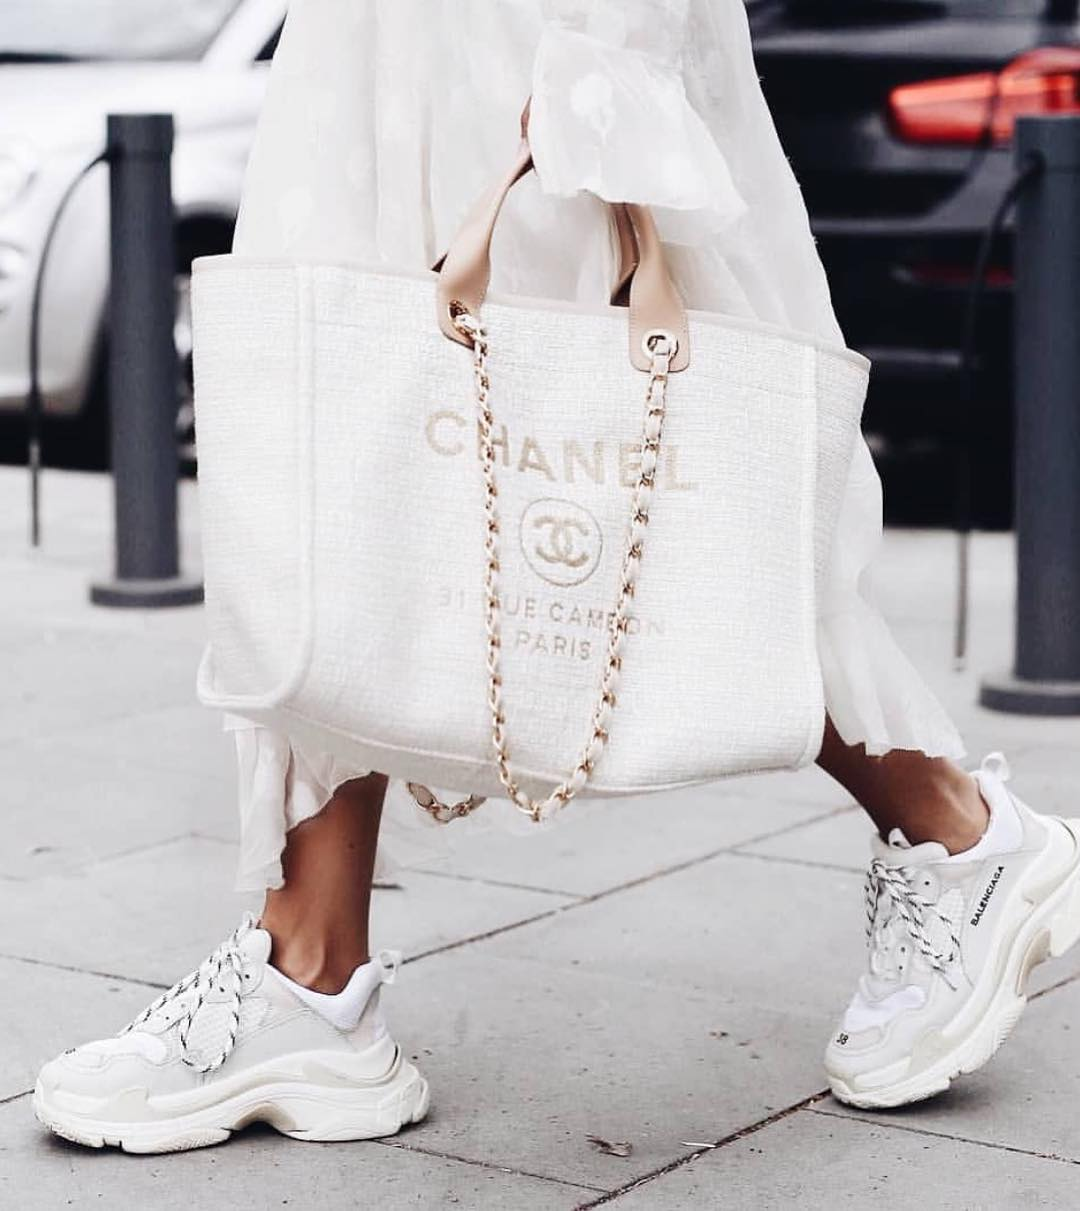 Ideal All White Look For Fall: Chunky Sneakers, Long Dress And Big Tote Bag 2019